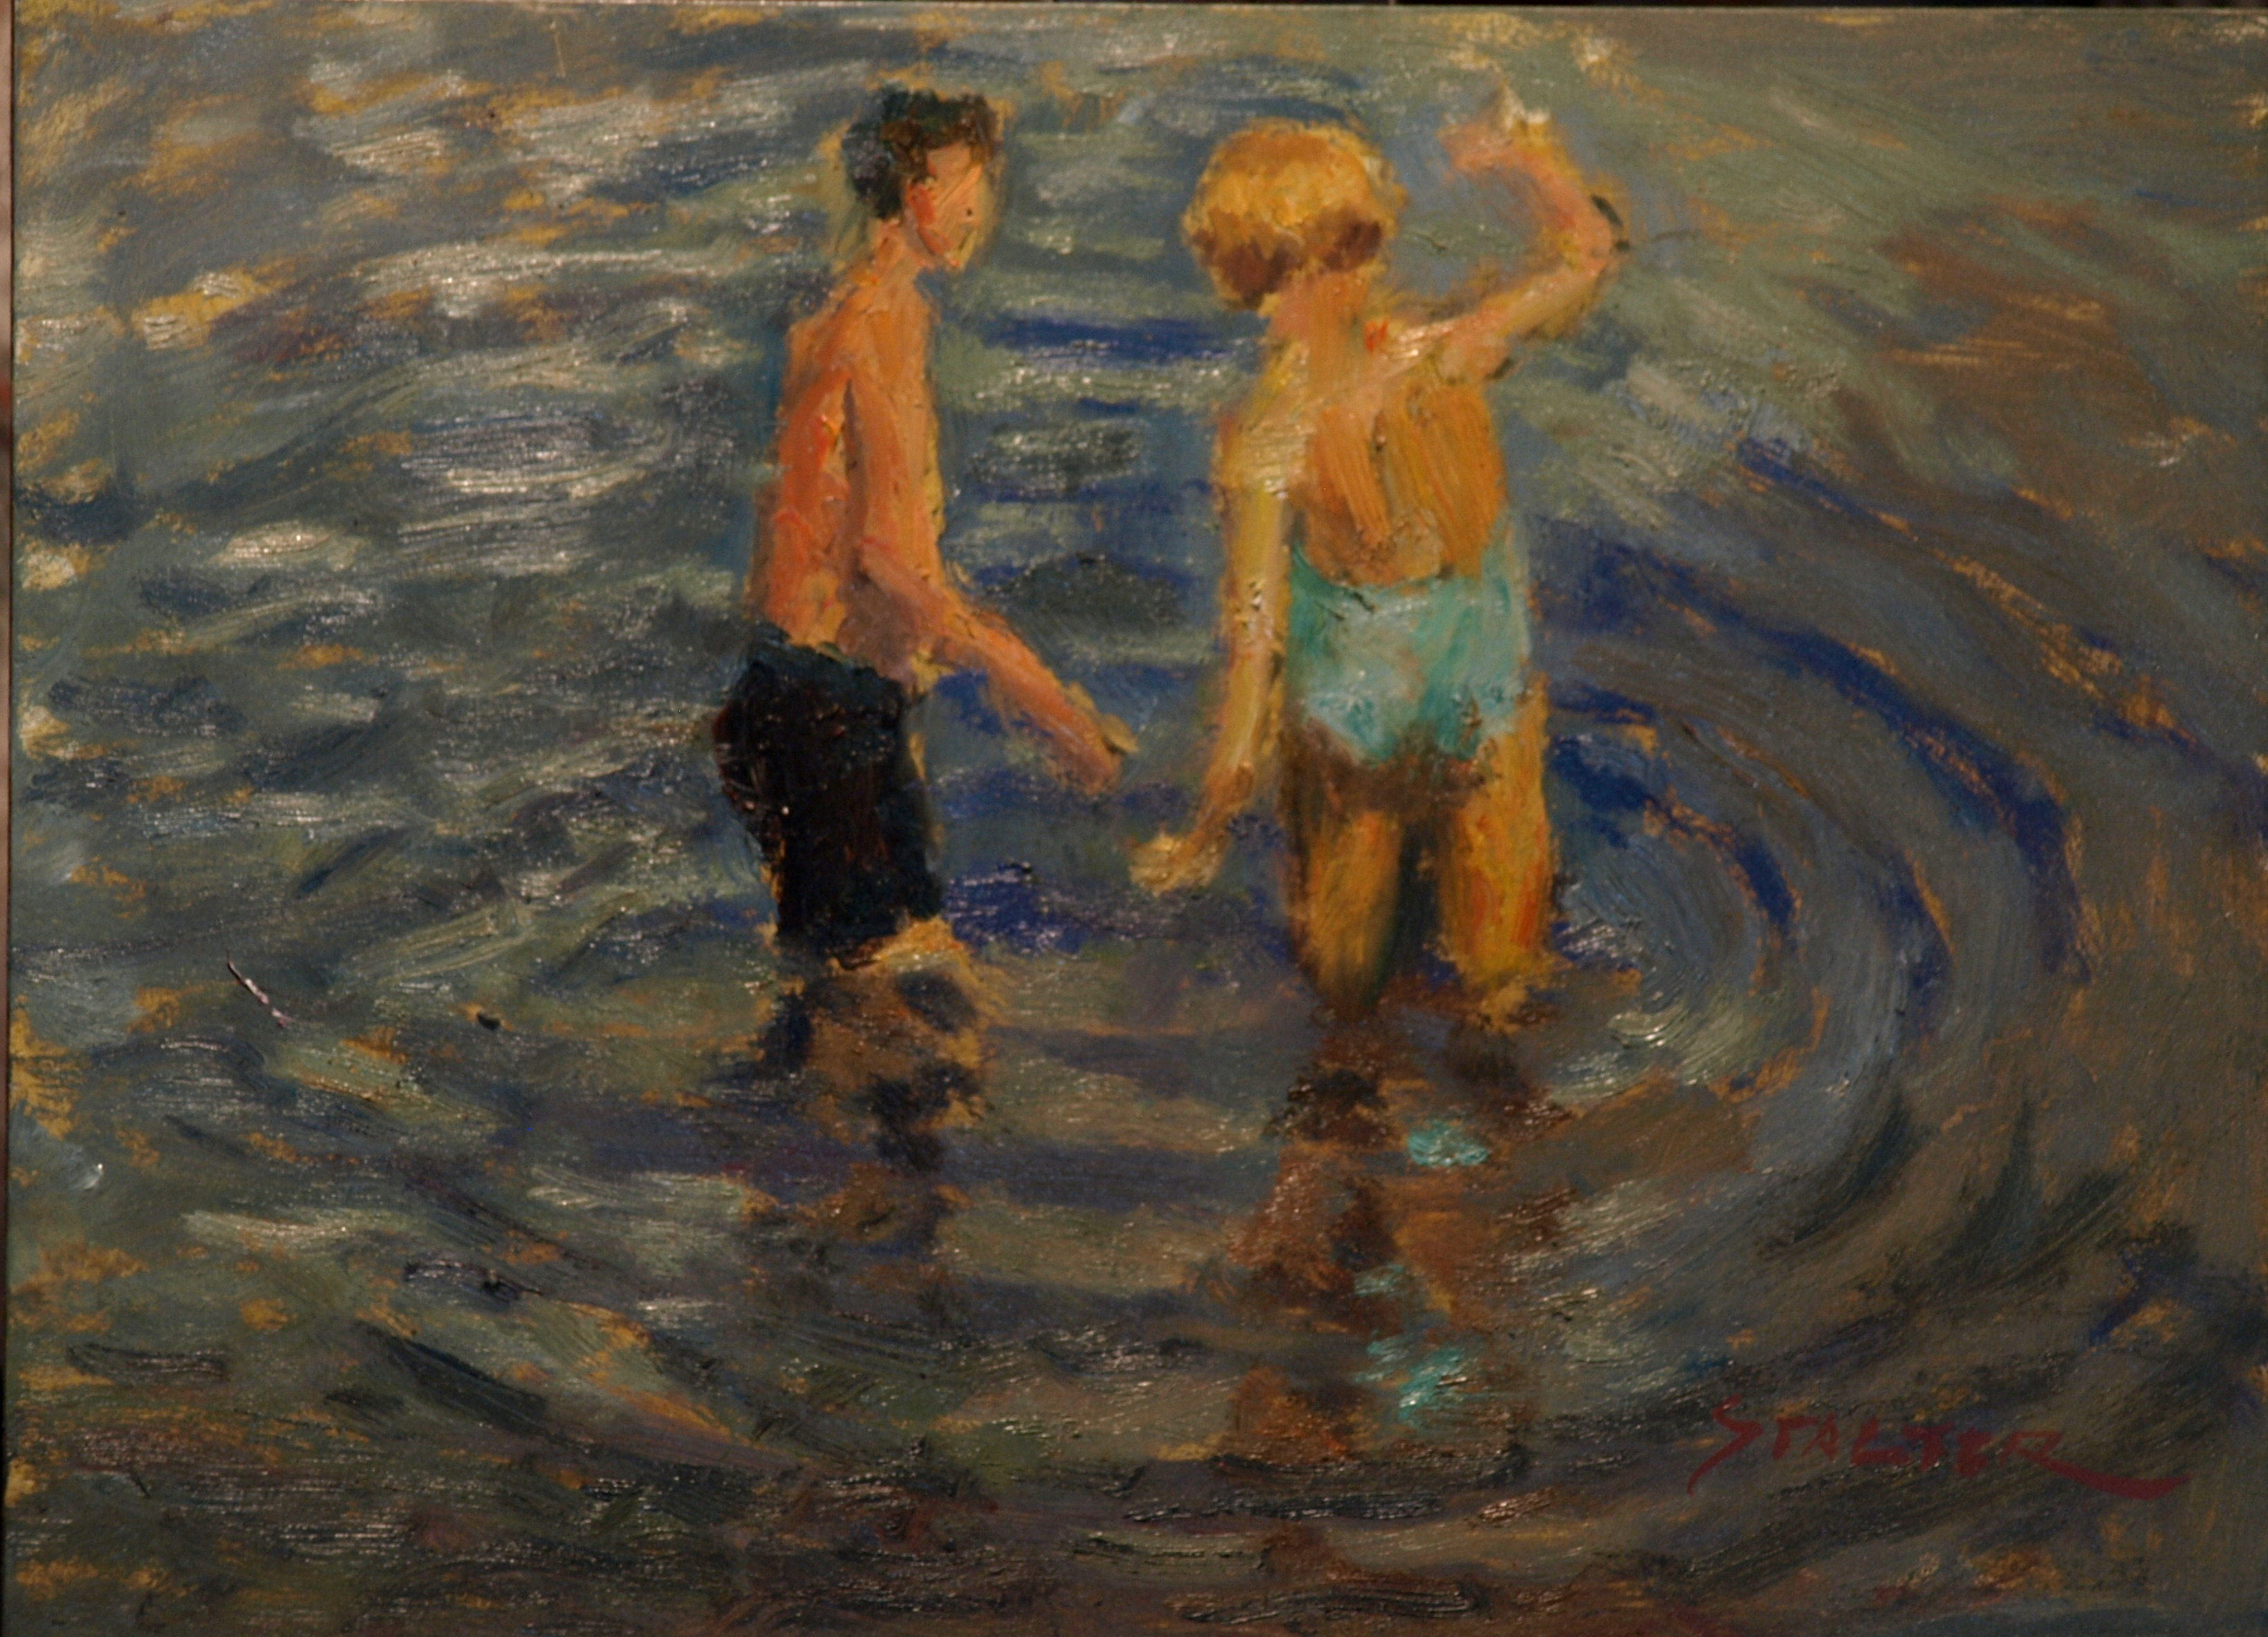 Swimmers, Oil on Canvas on Panel, 9 x 12 Inches, by Richard Stalter, $225